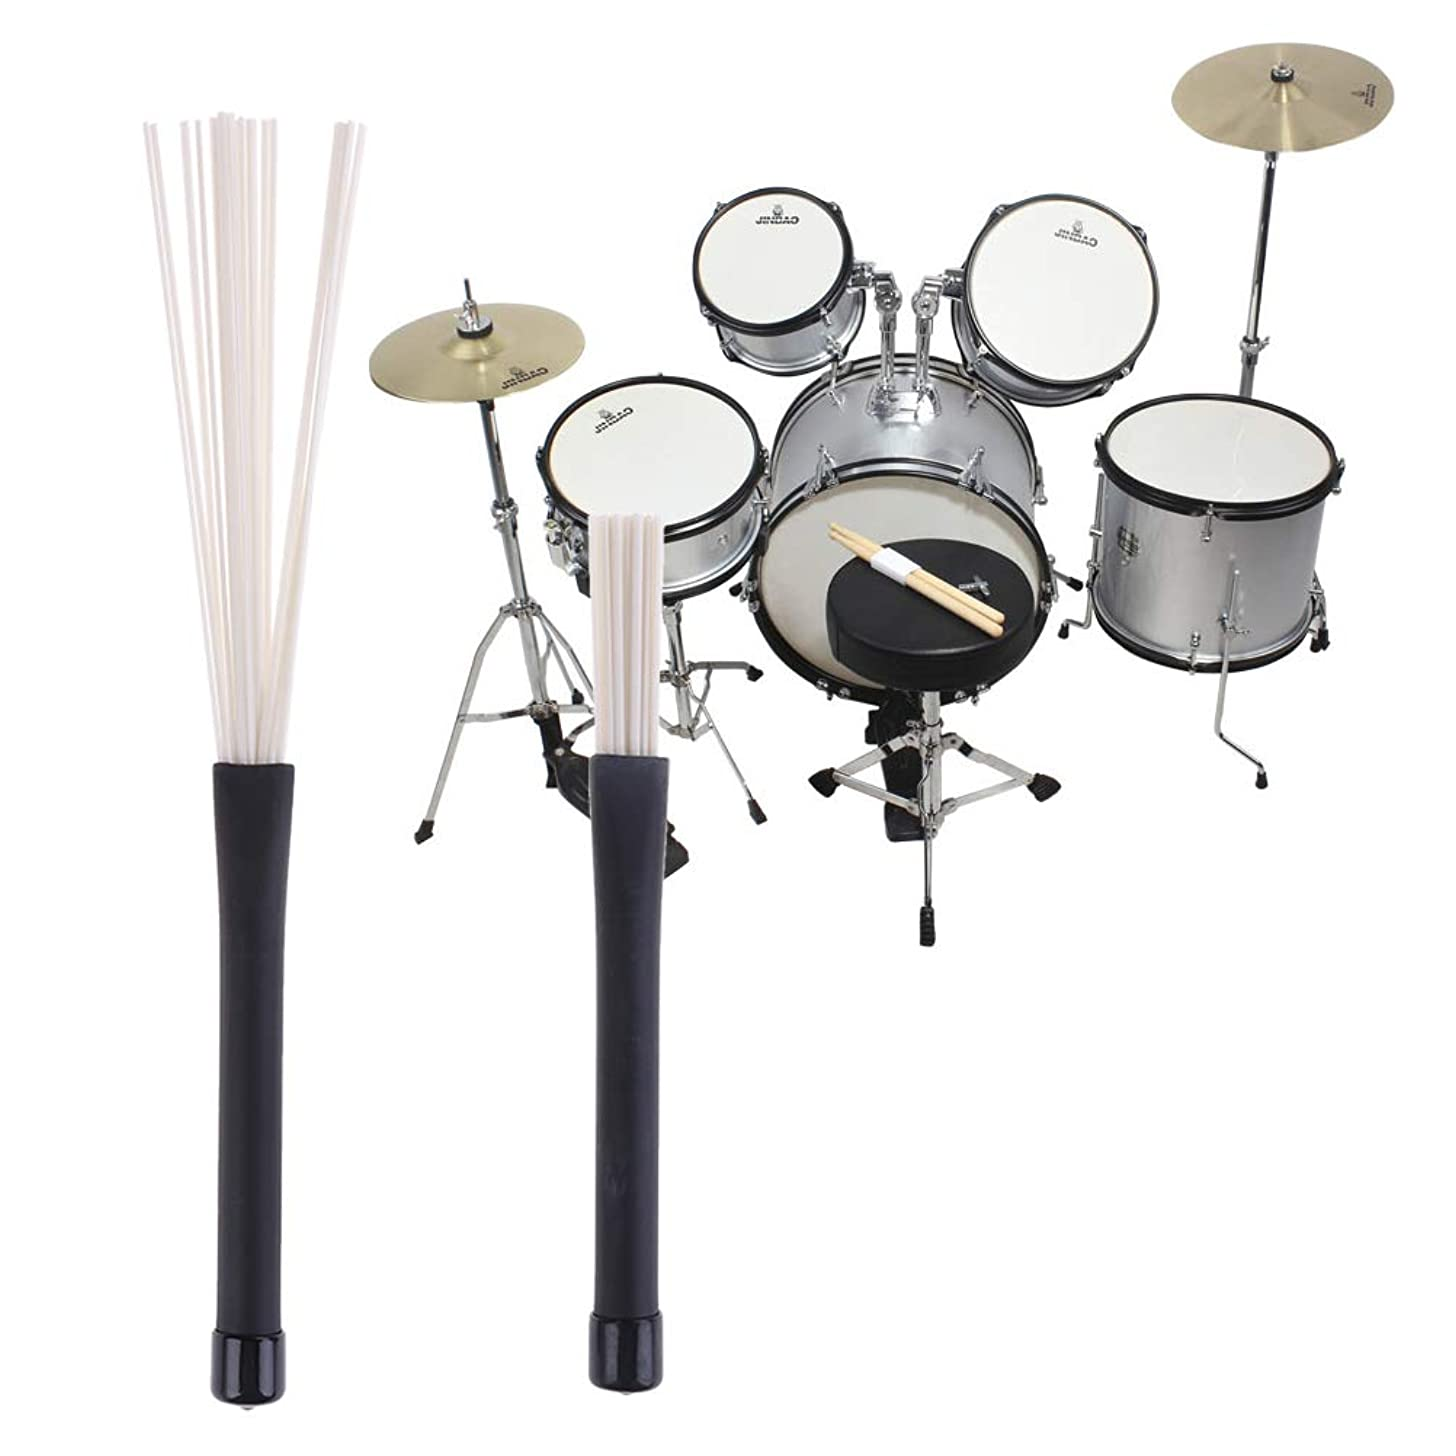 1PC Retractable Nylon Bristle Jazz Drum Sticks Drum Brushes Drum Sticks Percussion Drumstick, for Students and Adults